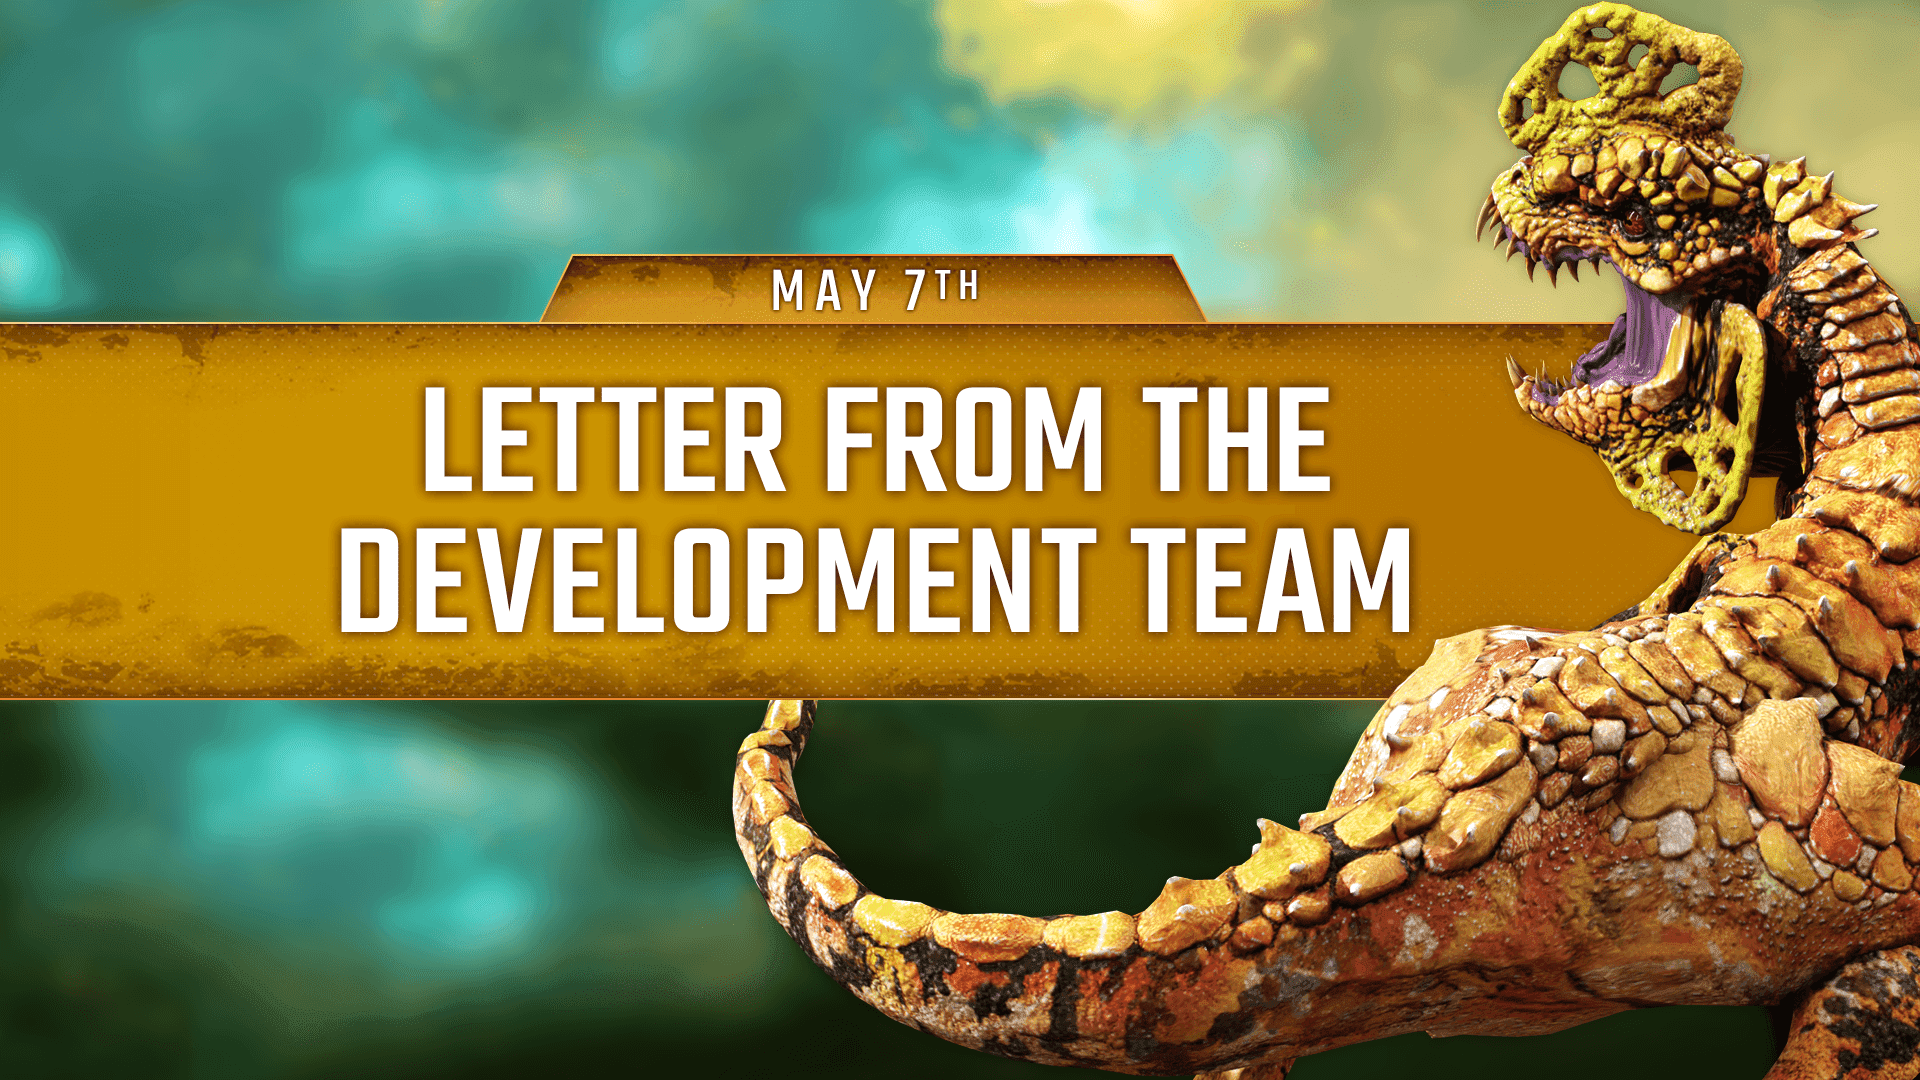 News From The Development Team May 7th